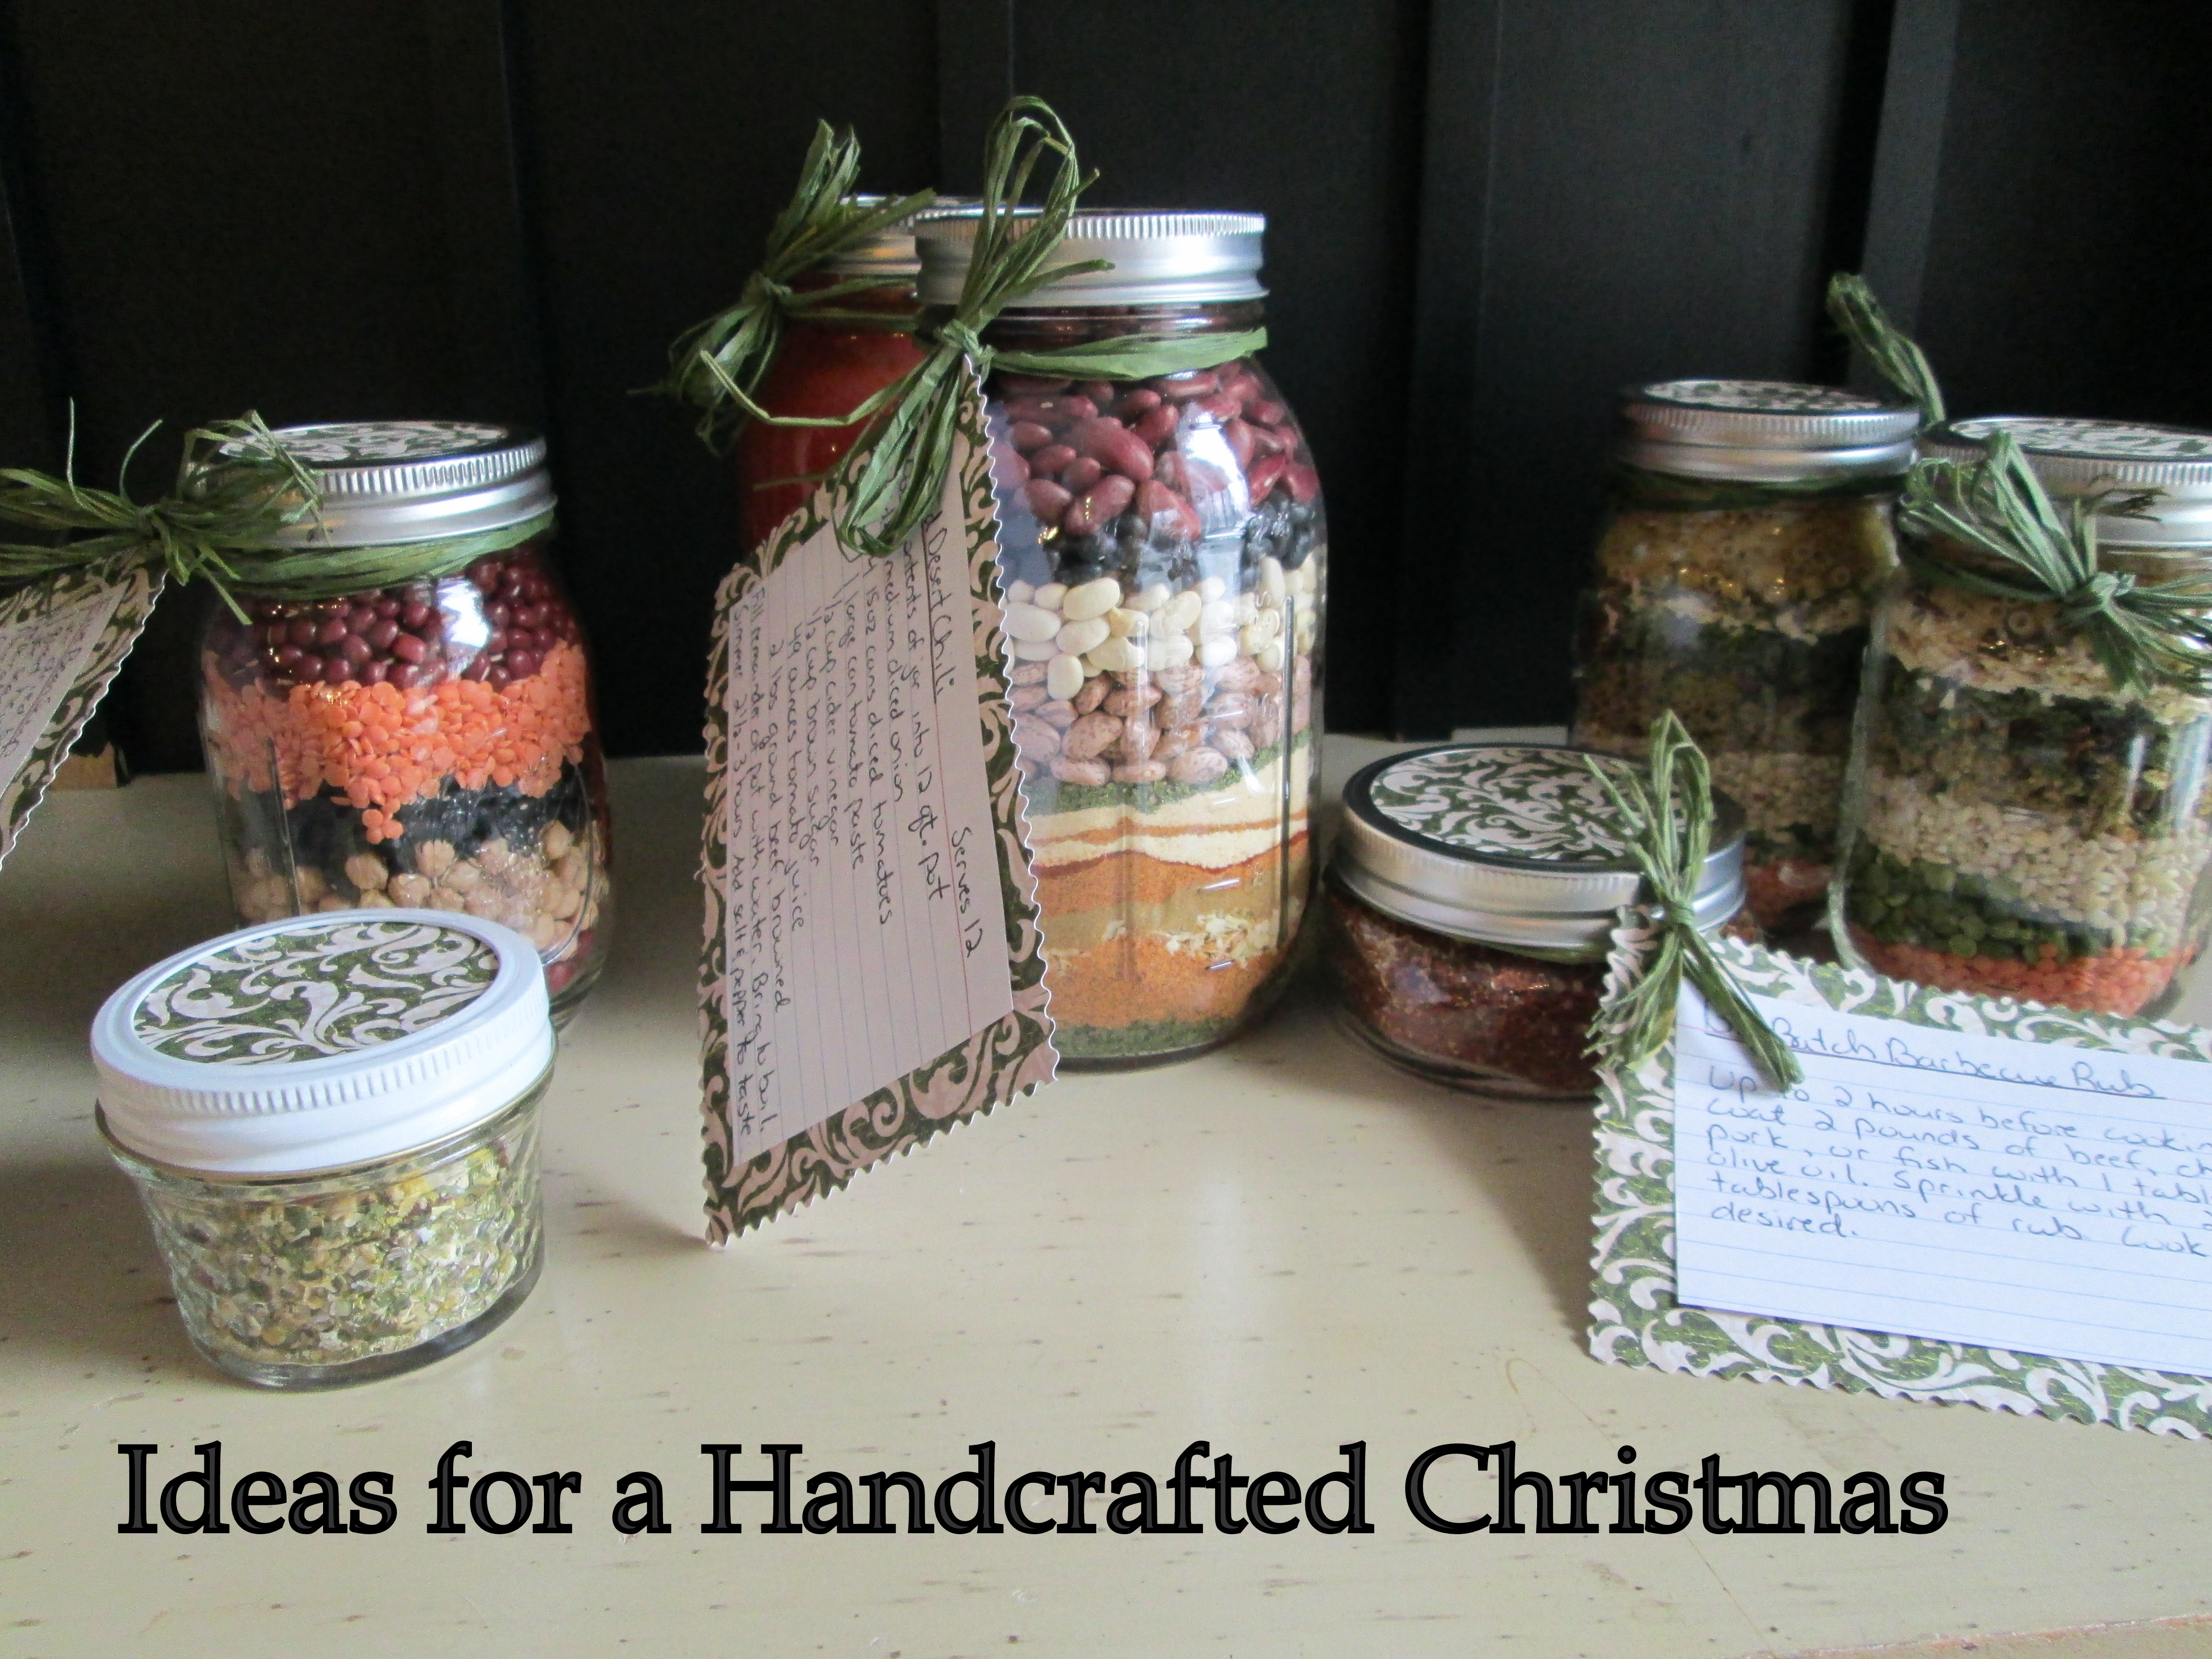 Five do it yourself gift ideas for a handcrafted christmascounting ideas for a handcrafted christmas five do it yourself gift ideas solutioingenieria Gallery